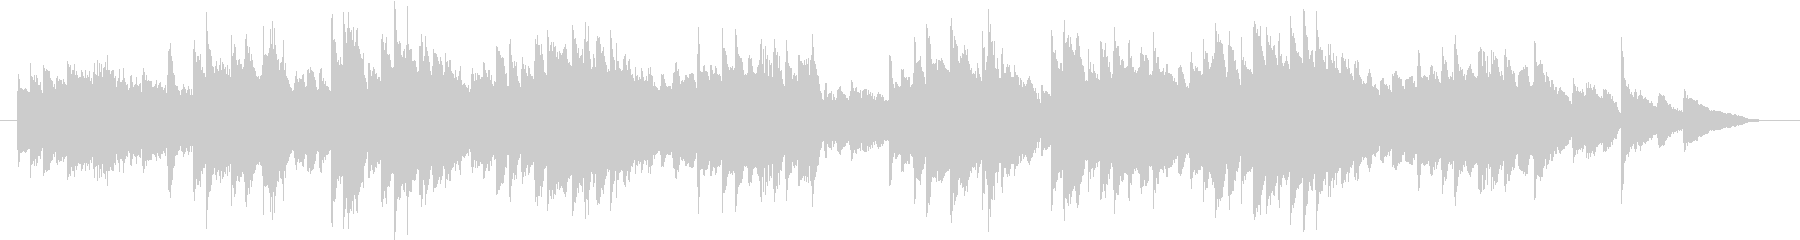 Jericho's Battle Black Spirituals on a sprinting piano's unreproduced waveform